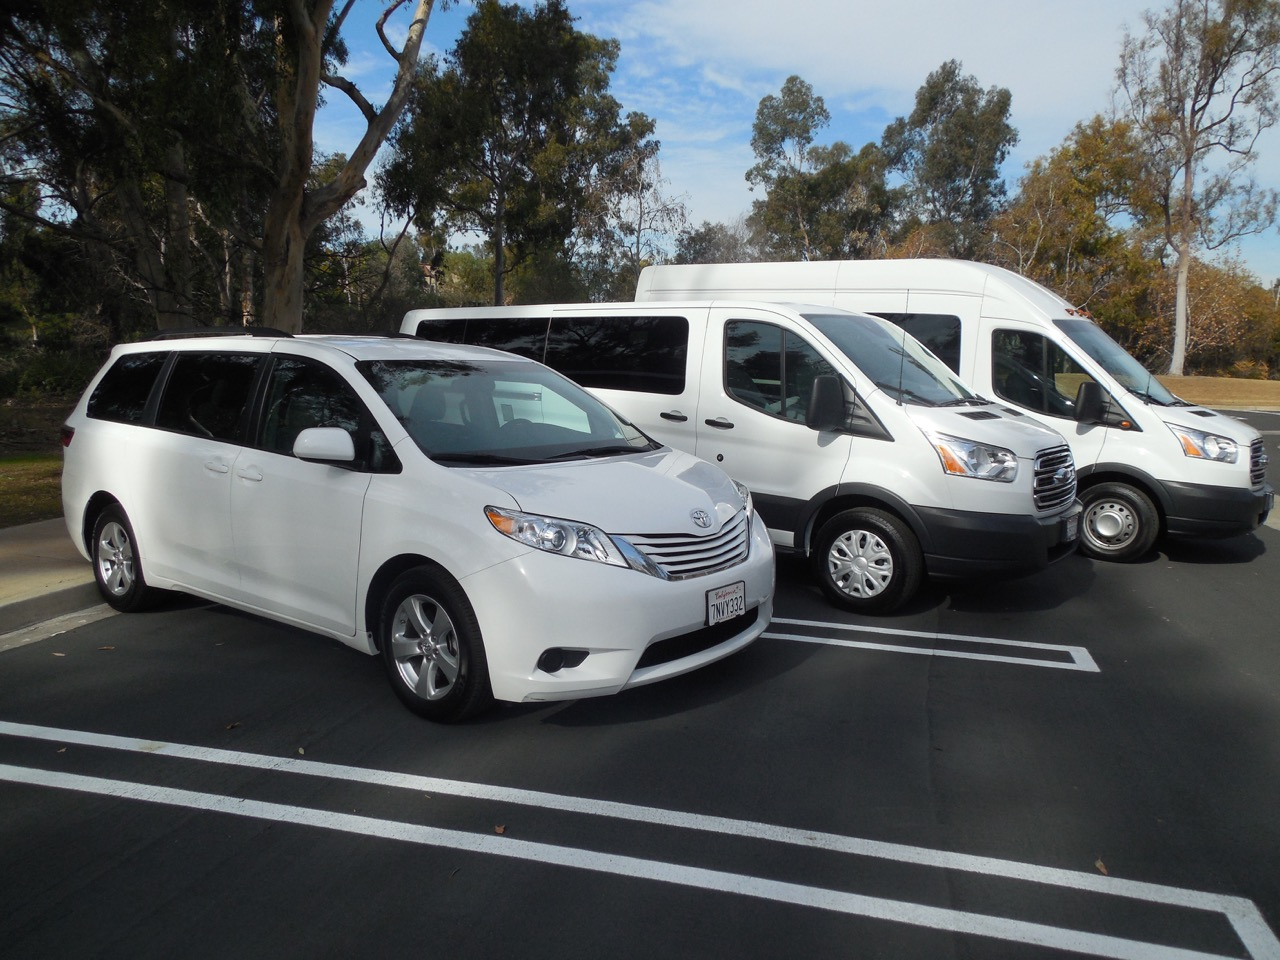 van rental Huntington Beach